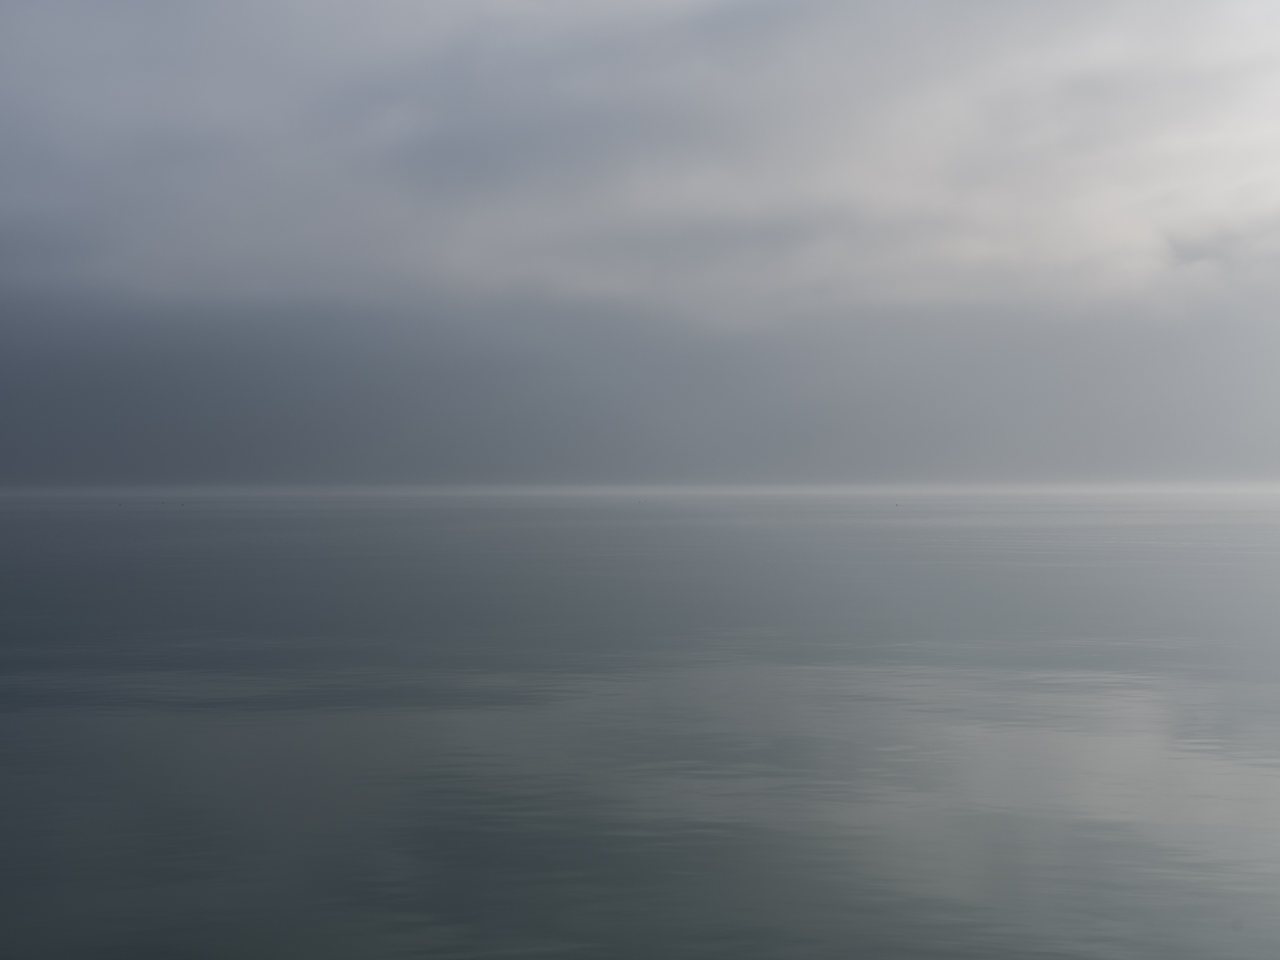 foggy and dense clouds cover a gray lake